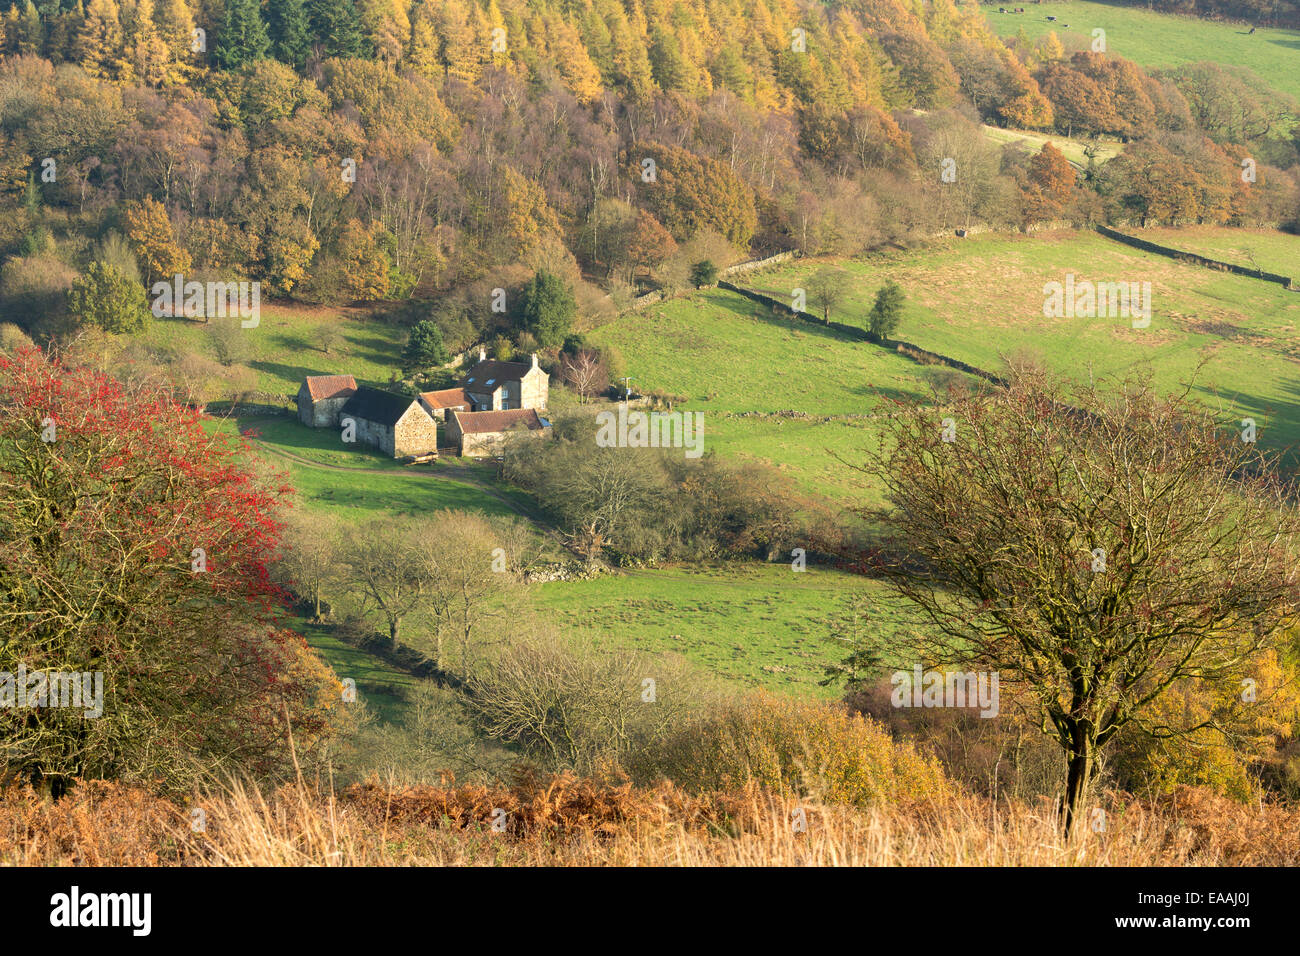 An isolated farm in Farndale on the North Yorkshire moors in autumn. - Stock Image